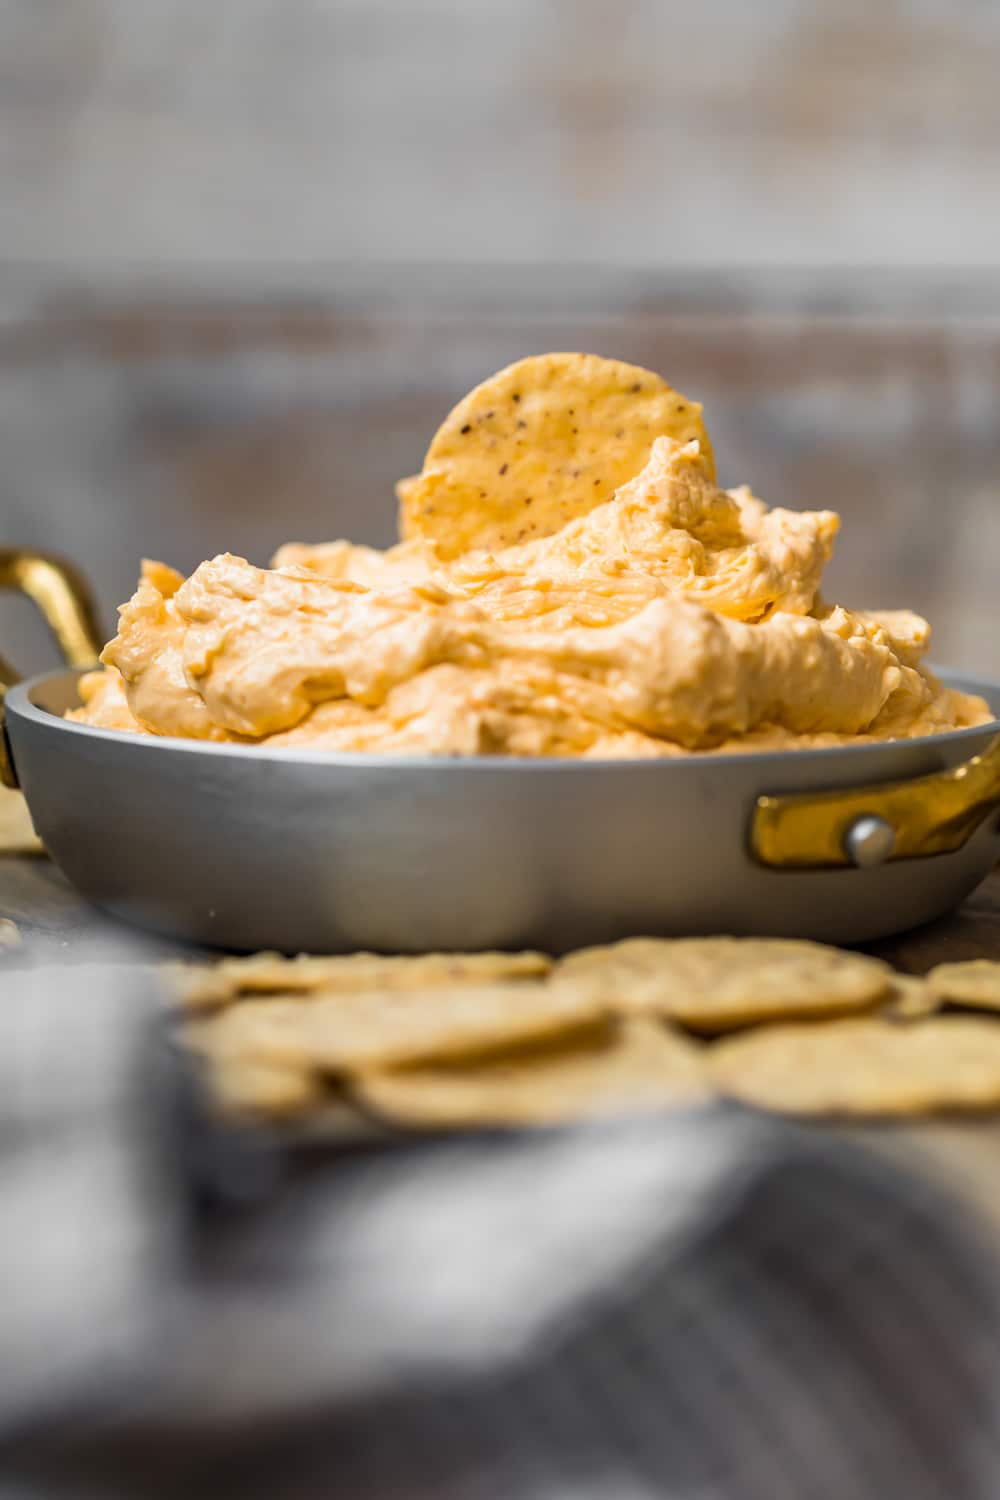 A dip piled high in a silver dish